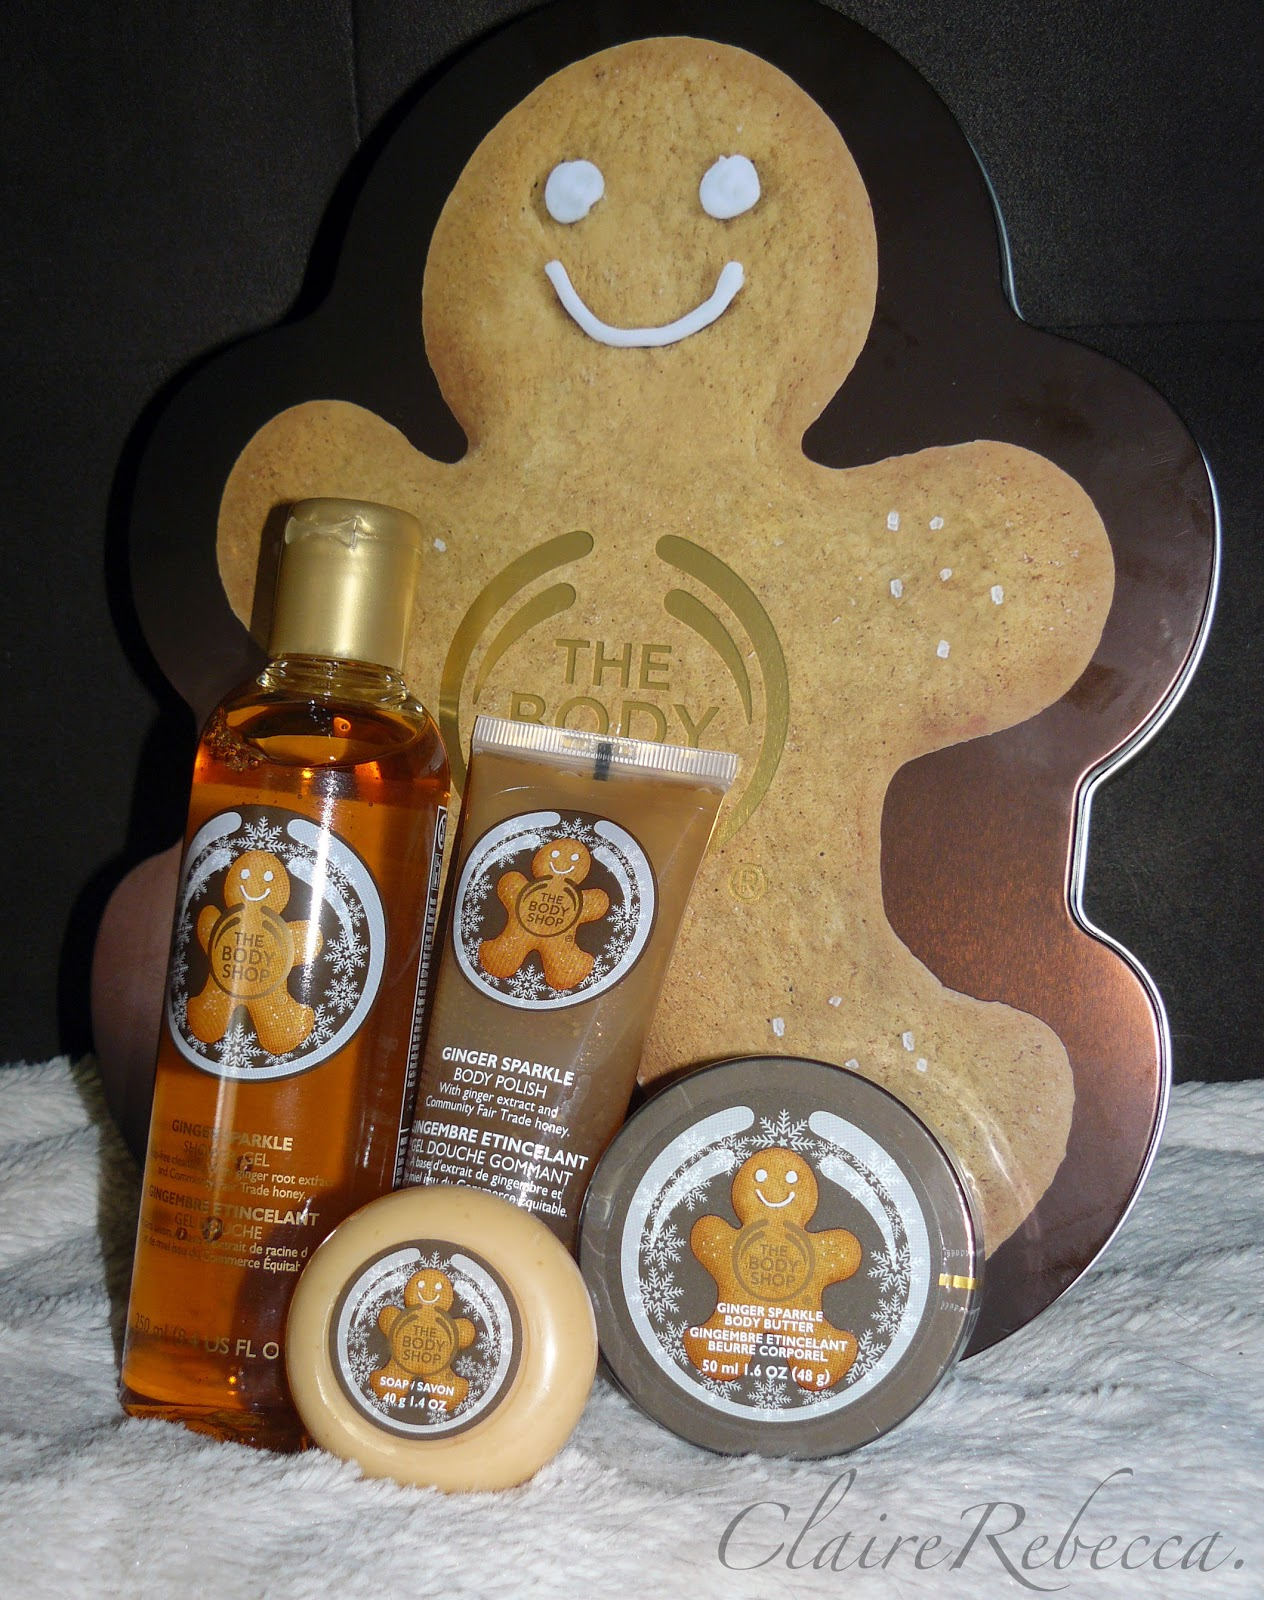 Christmas Gift Sets Body Shop.Body Shop Ginger Sparkle Christmas Gift Set Review